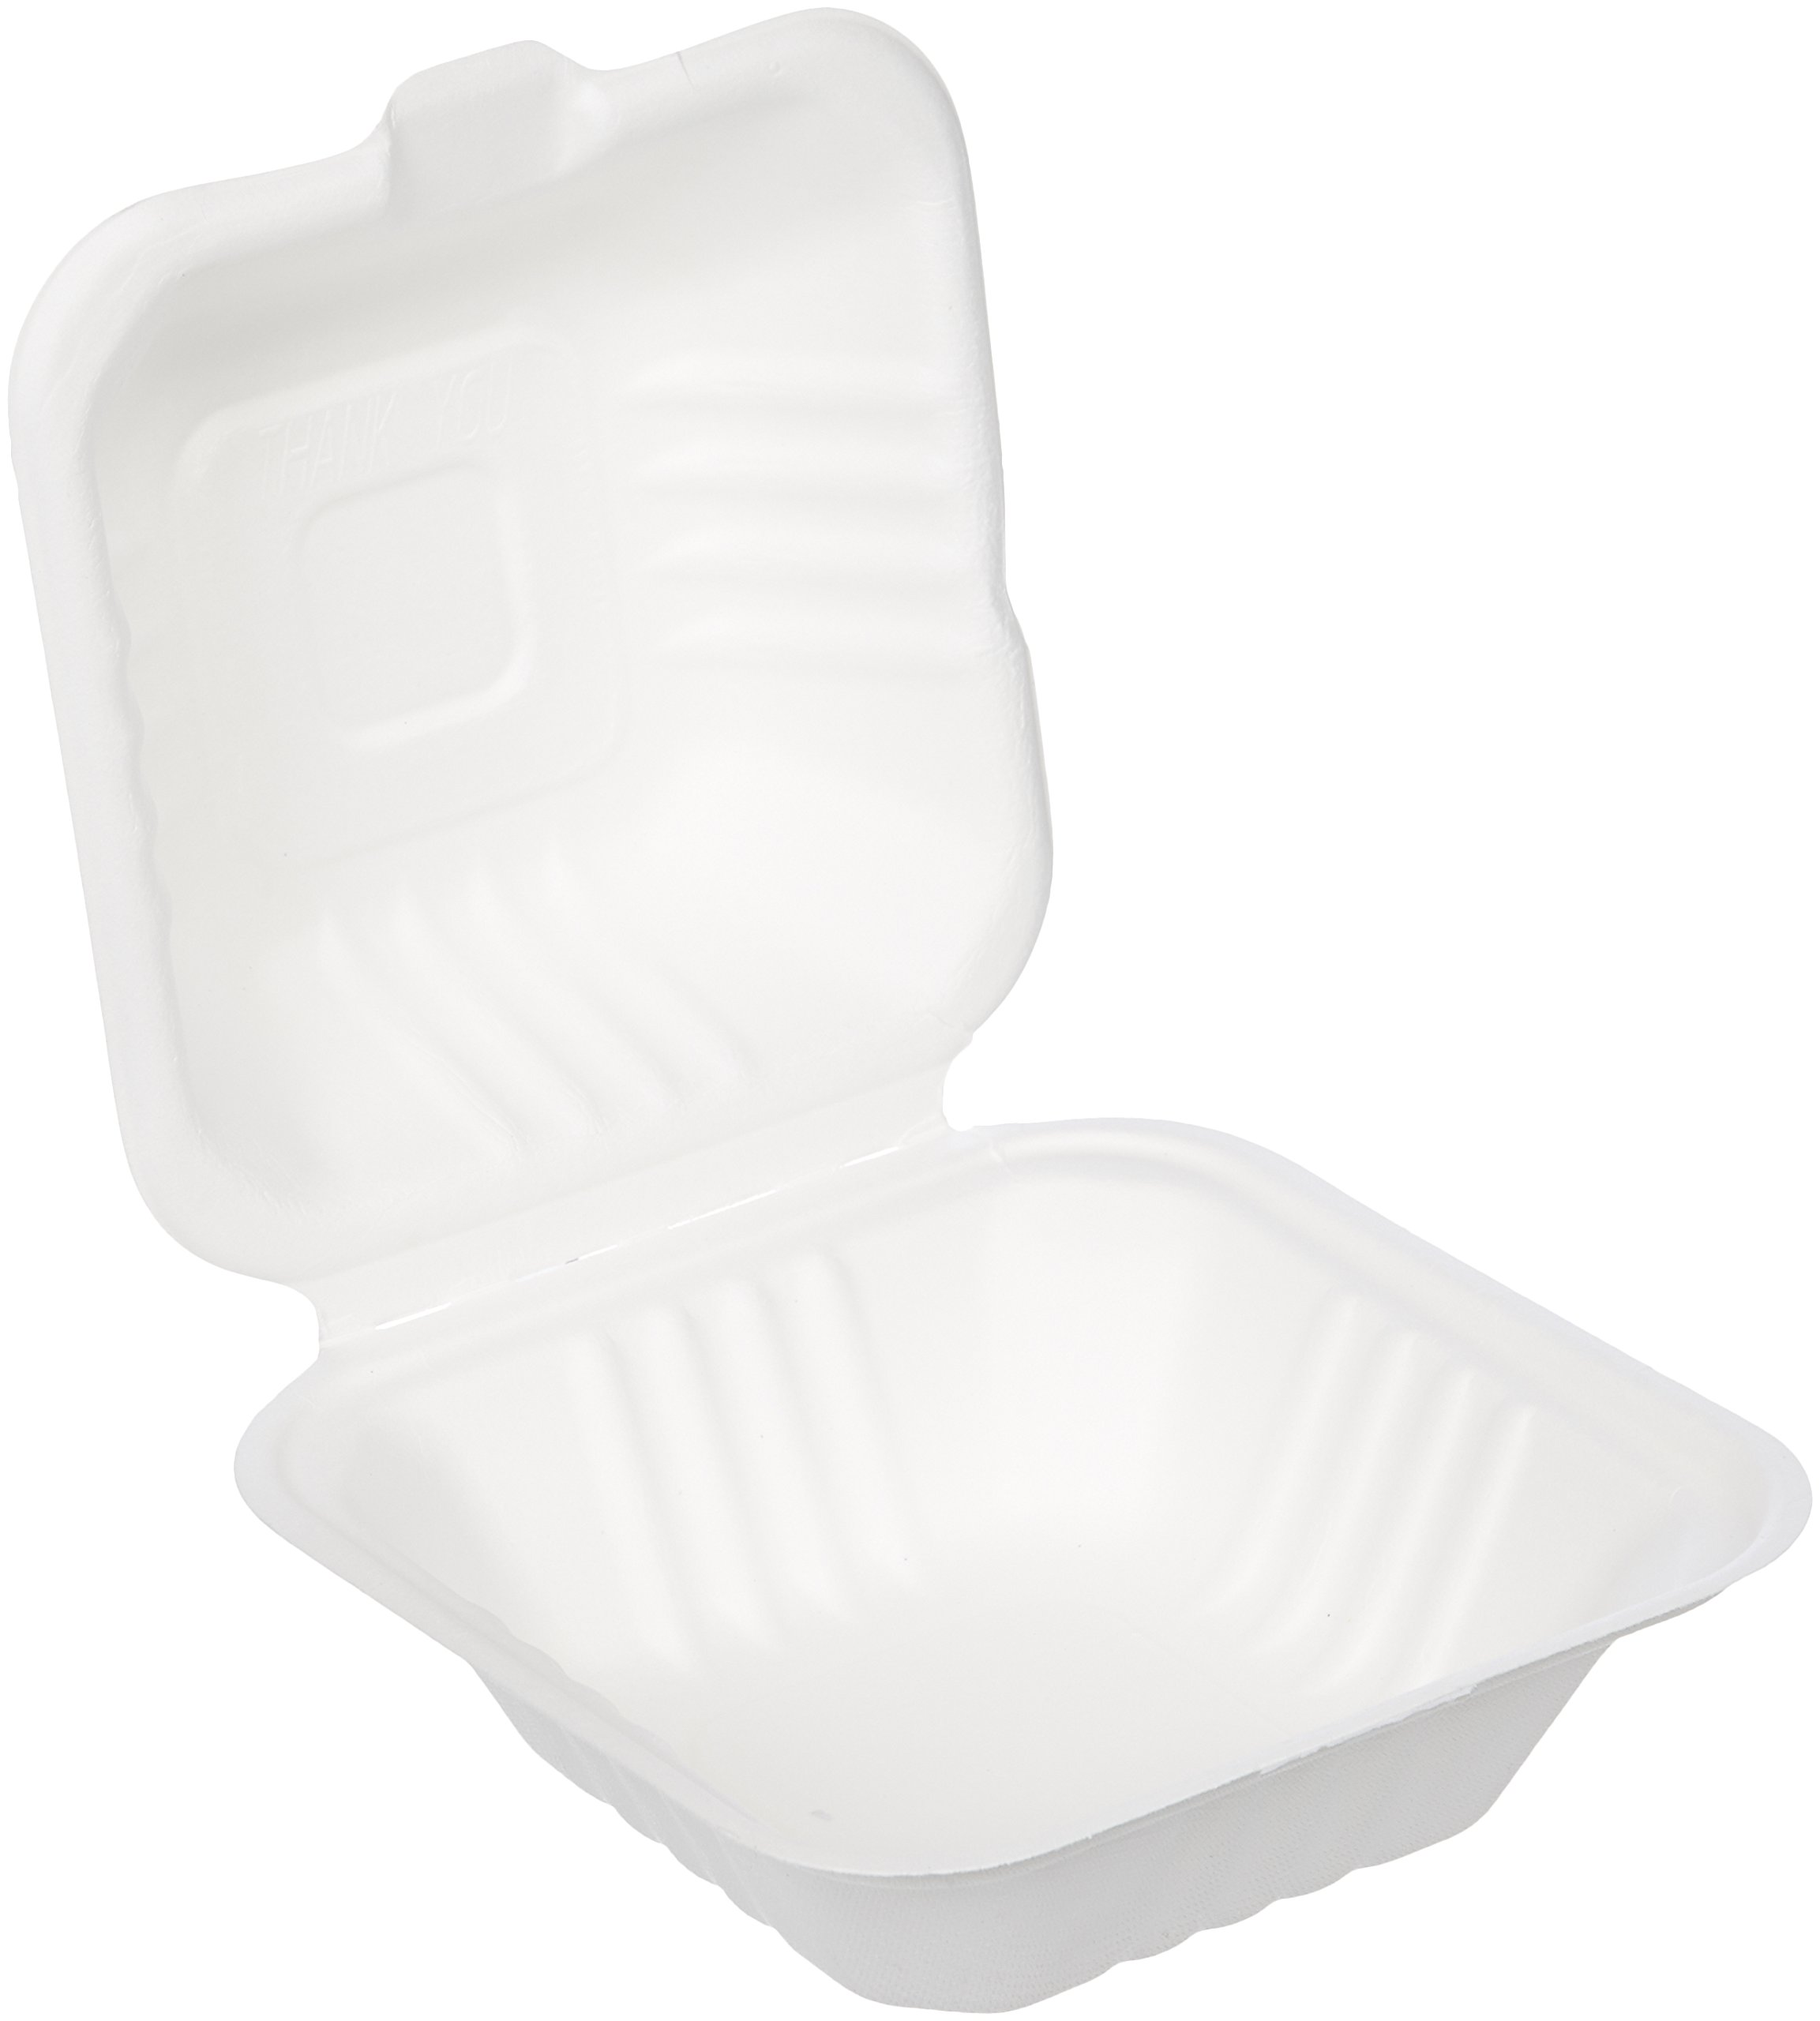 AmazonBasics 6'' x 6'' x 3.1'' Compostable Clamshell Take-Out Food Container, 500-Count